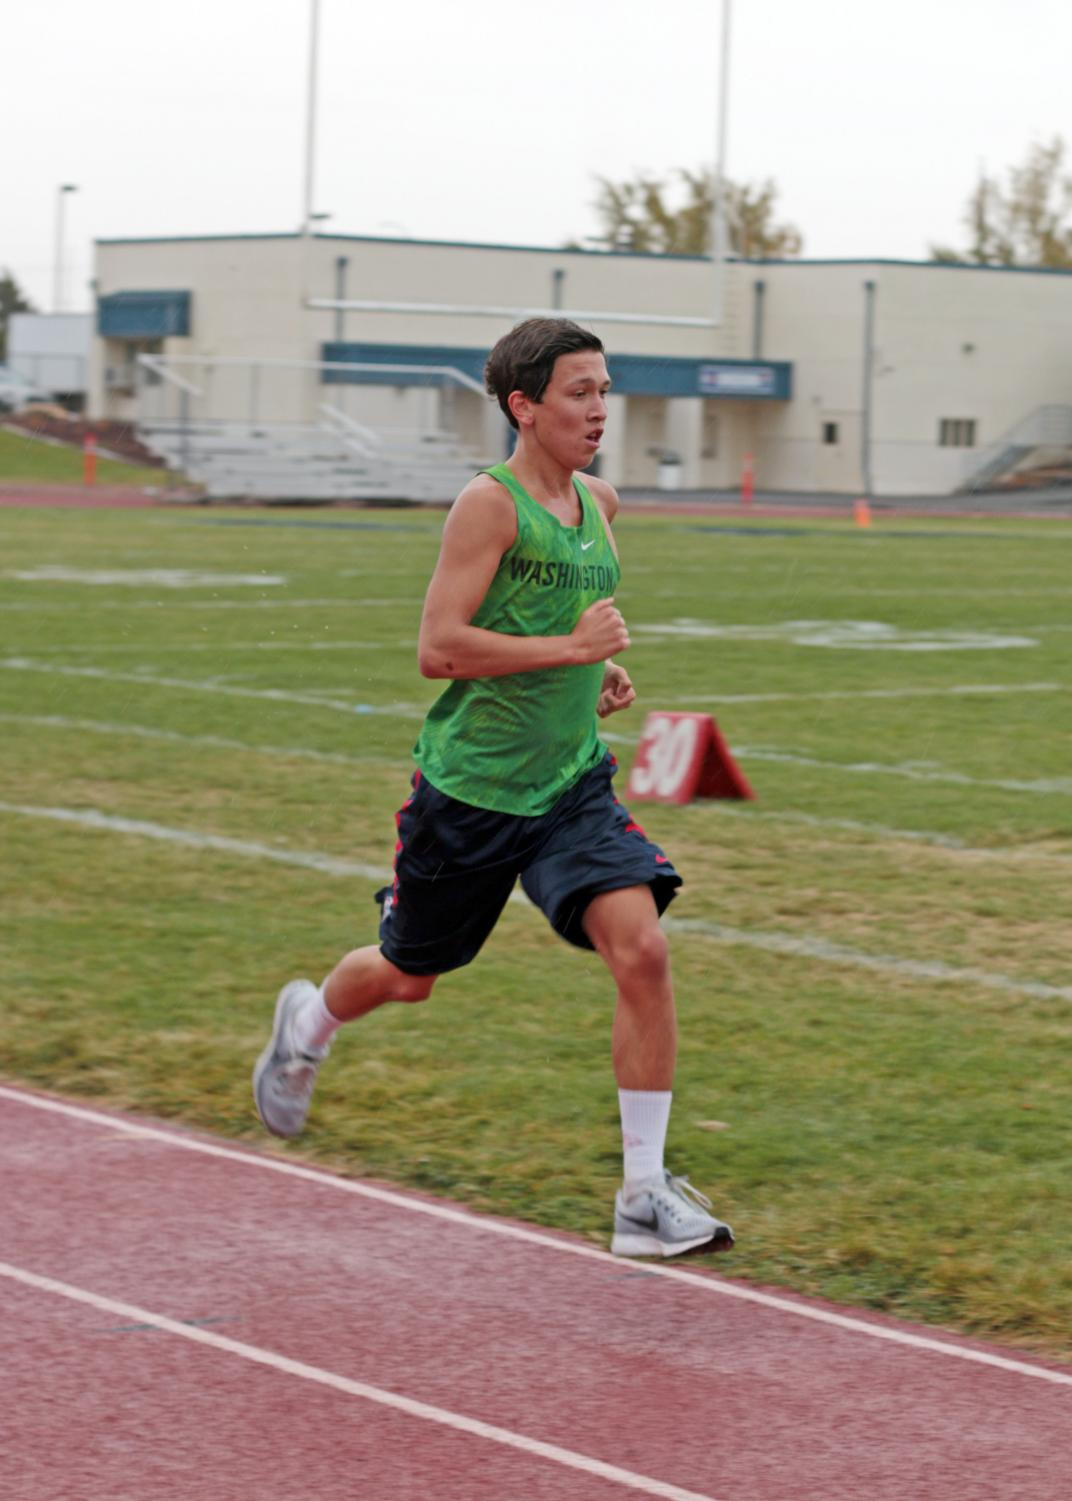 Turlan Morlan times his 400m pace at cross country practice.